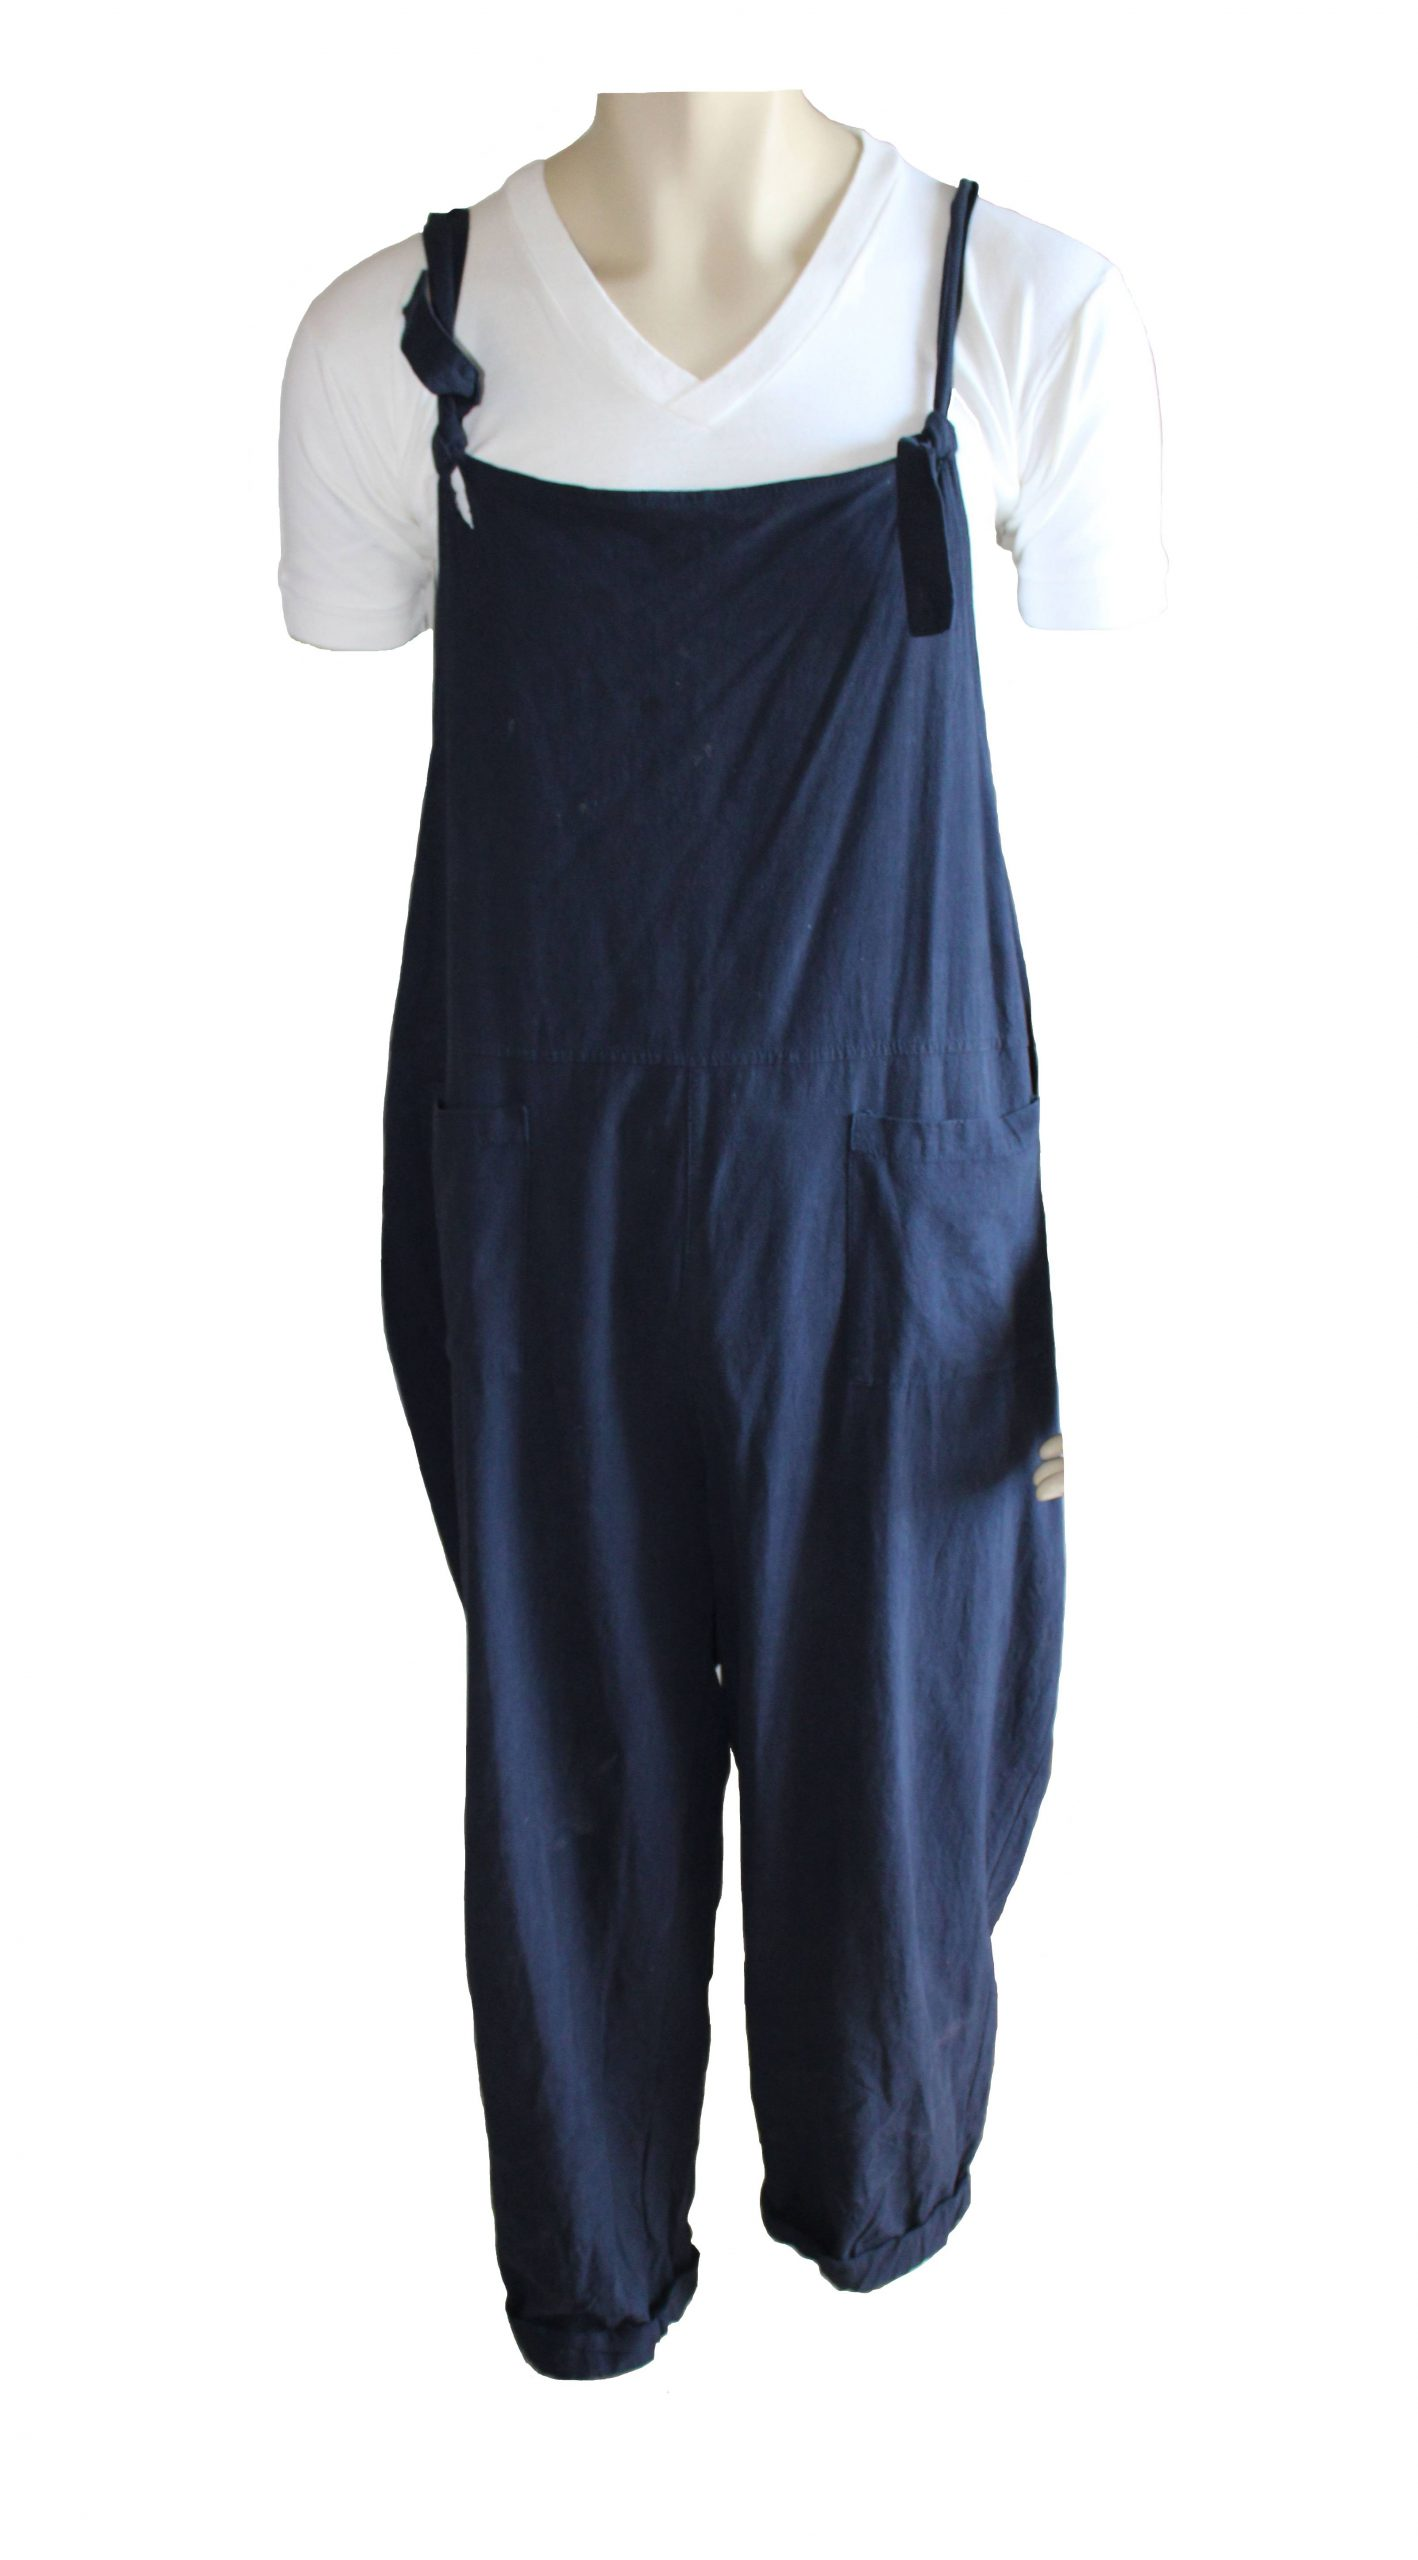 Dark blue dungarees over a white t-shirt